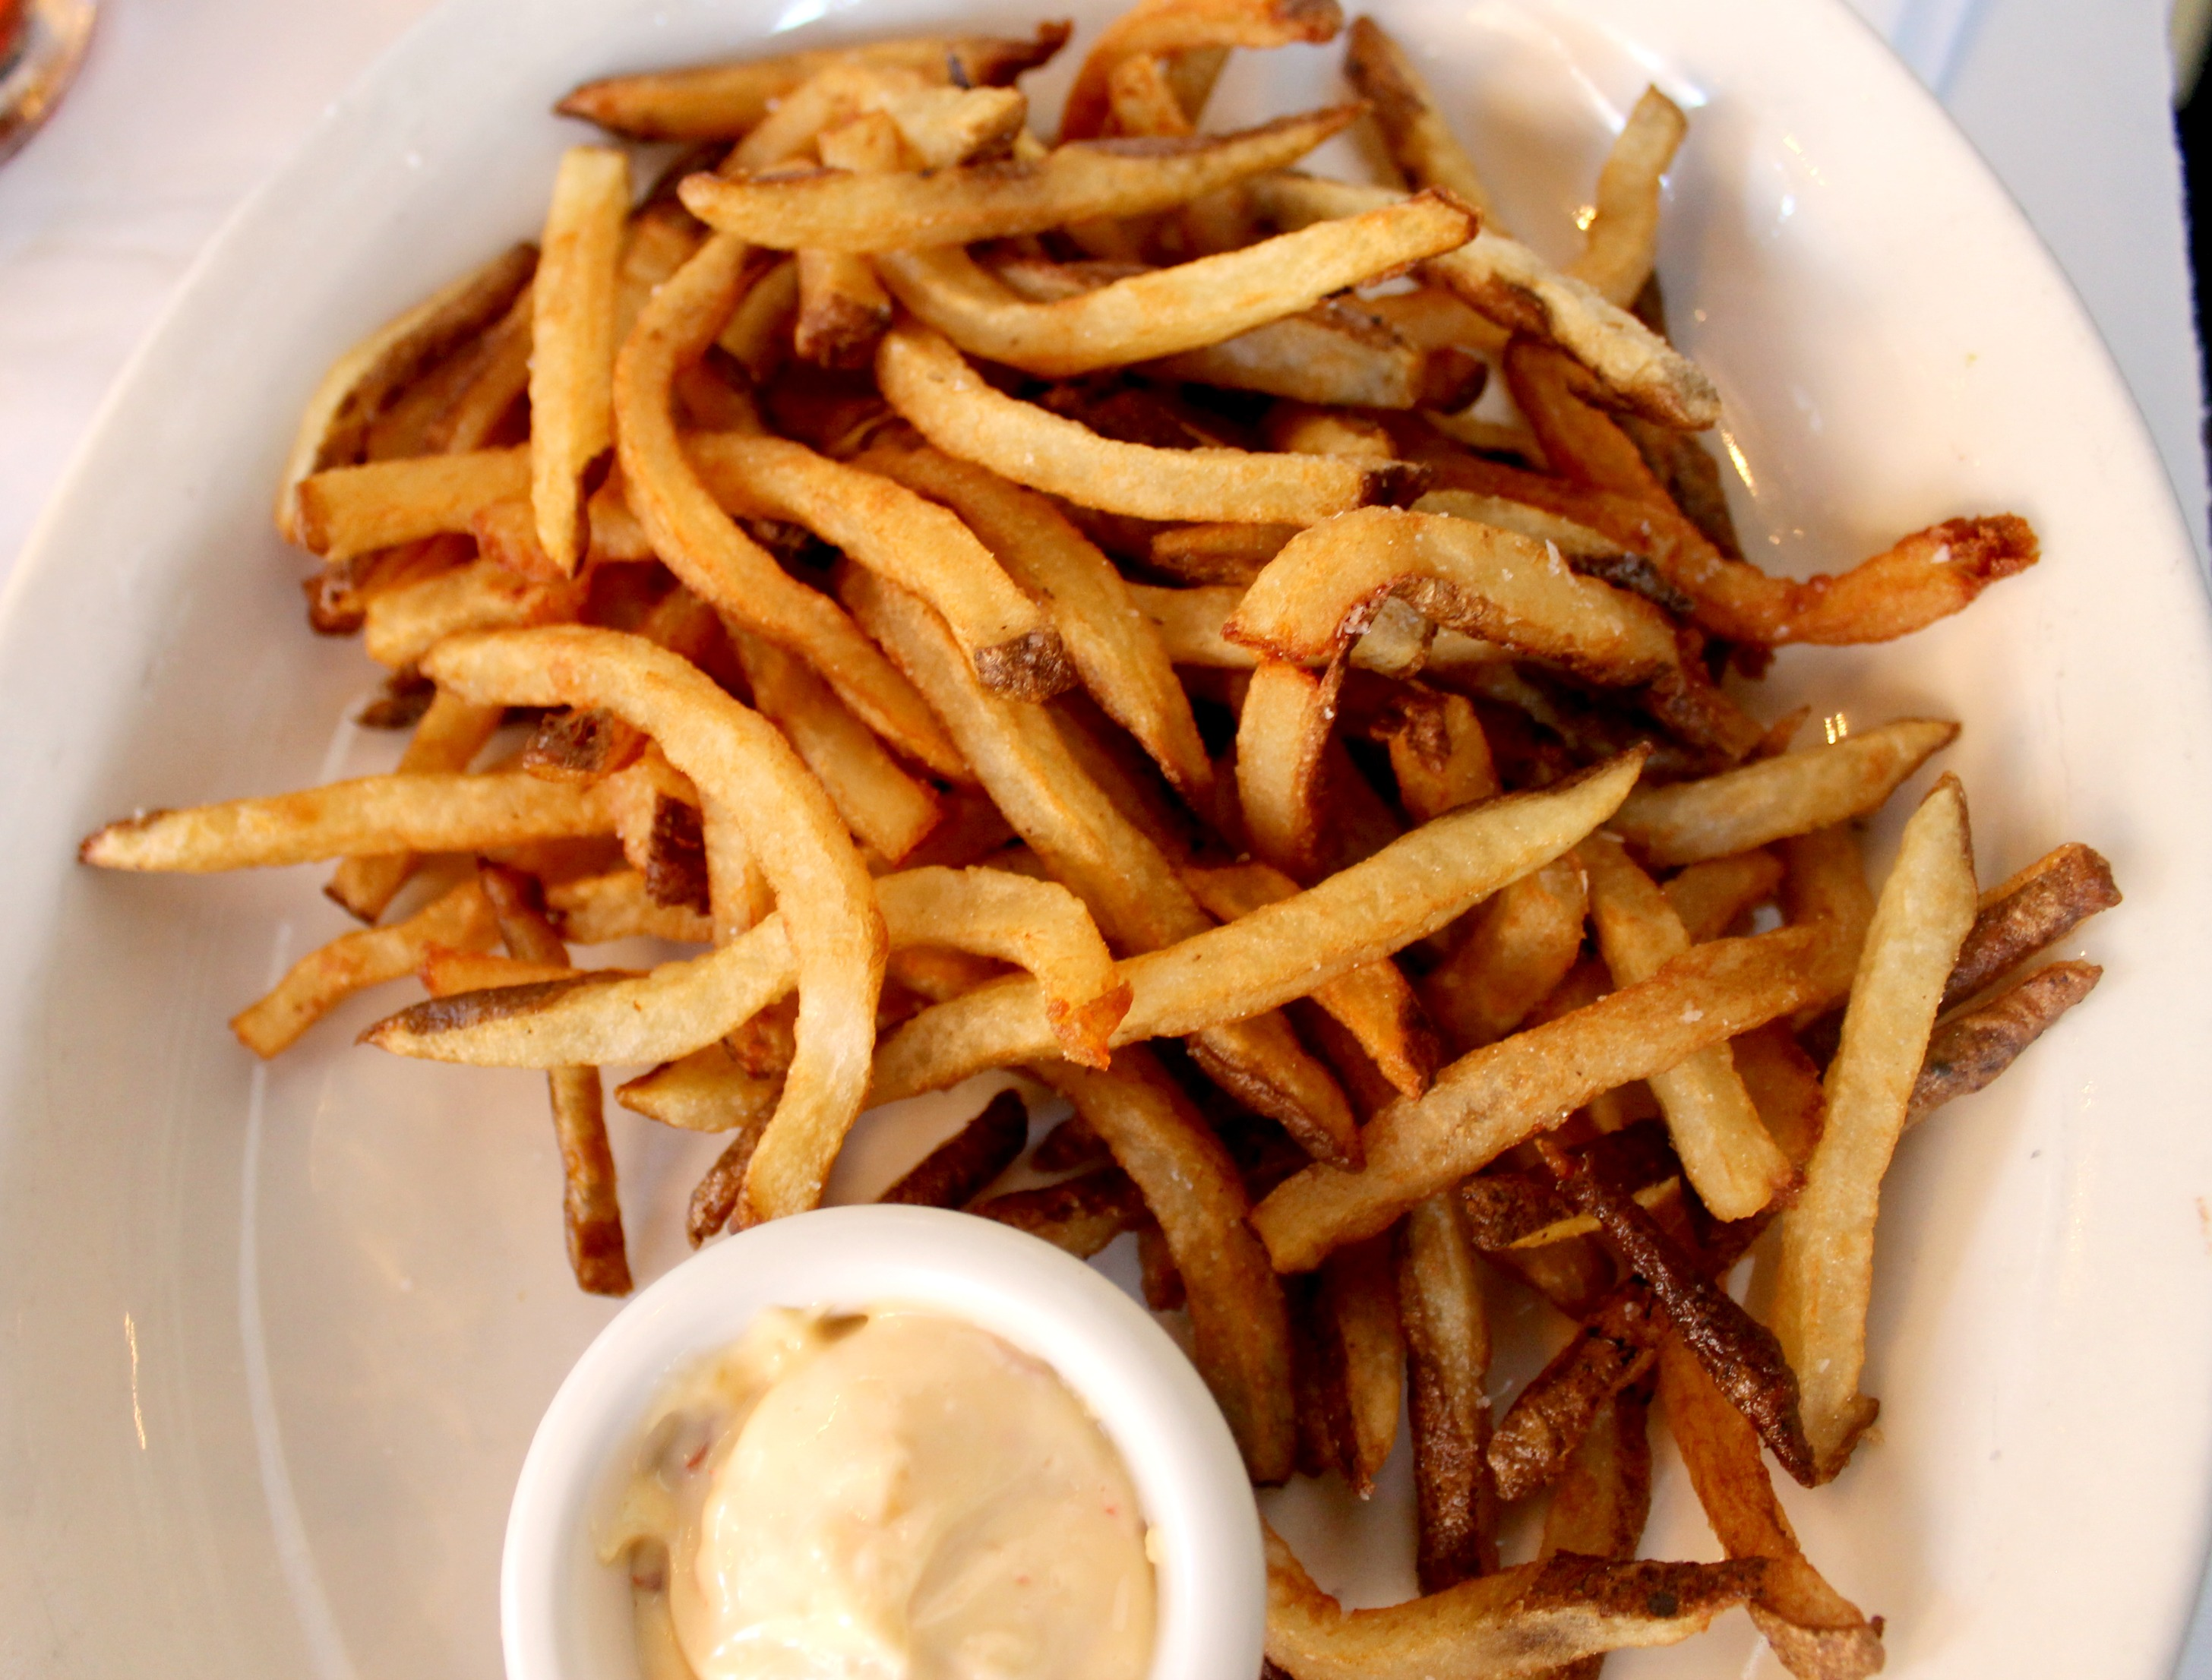 Mother's Bistro and Bar fries